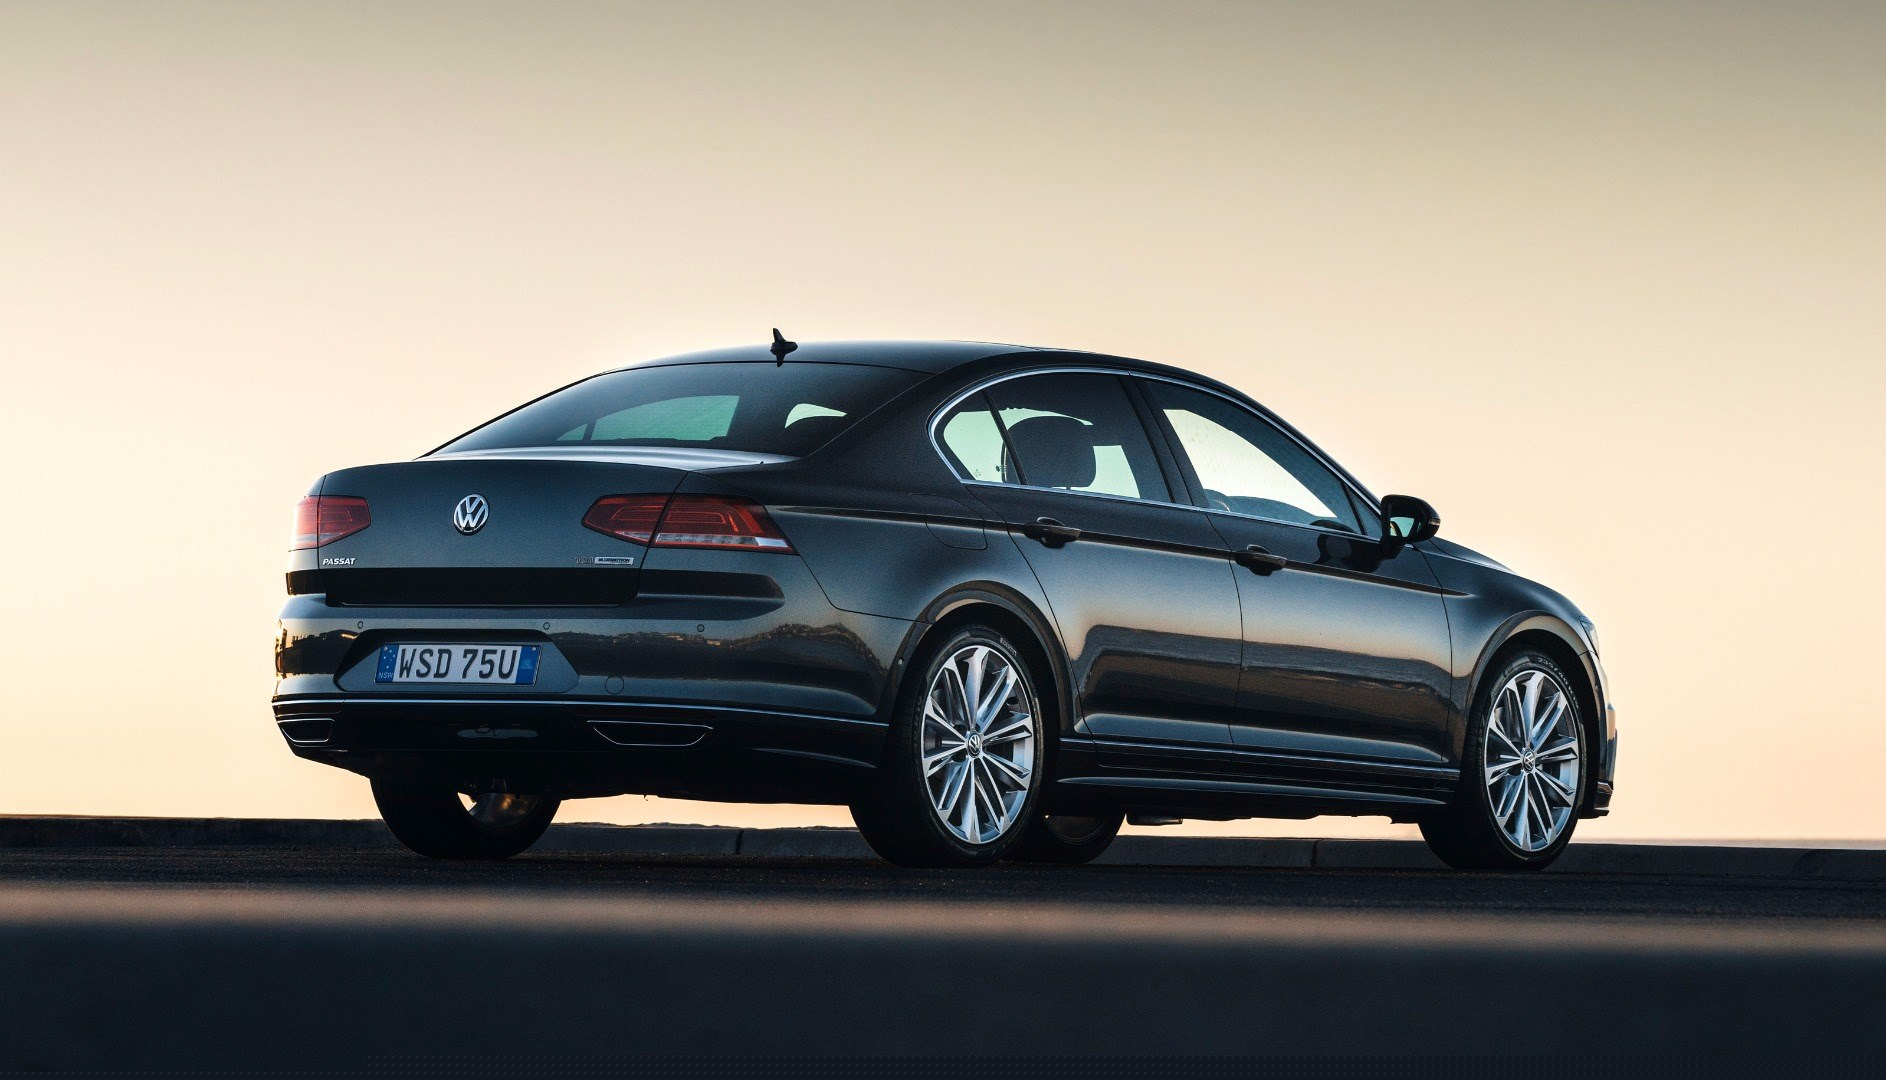 Hot 206kW Volkswagen Passat To Hit Oz In October Thumbnail